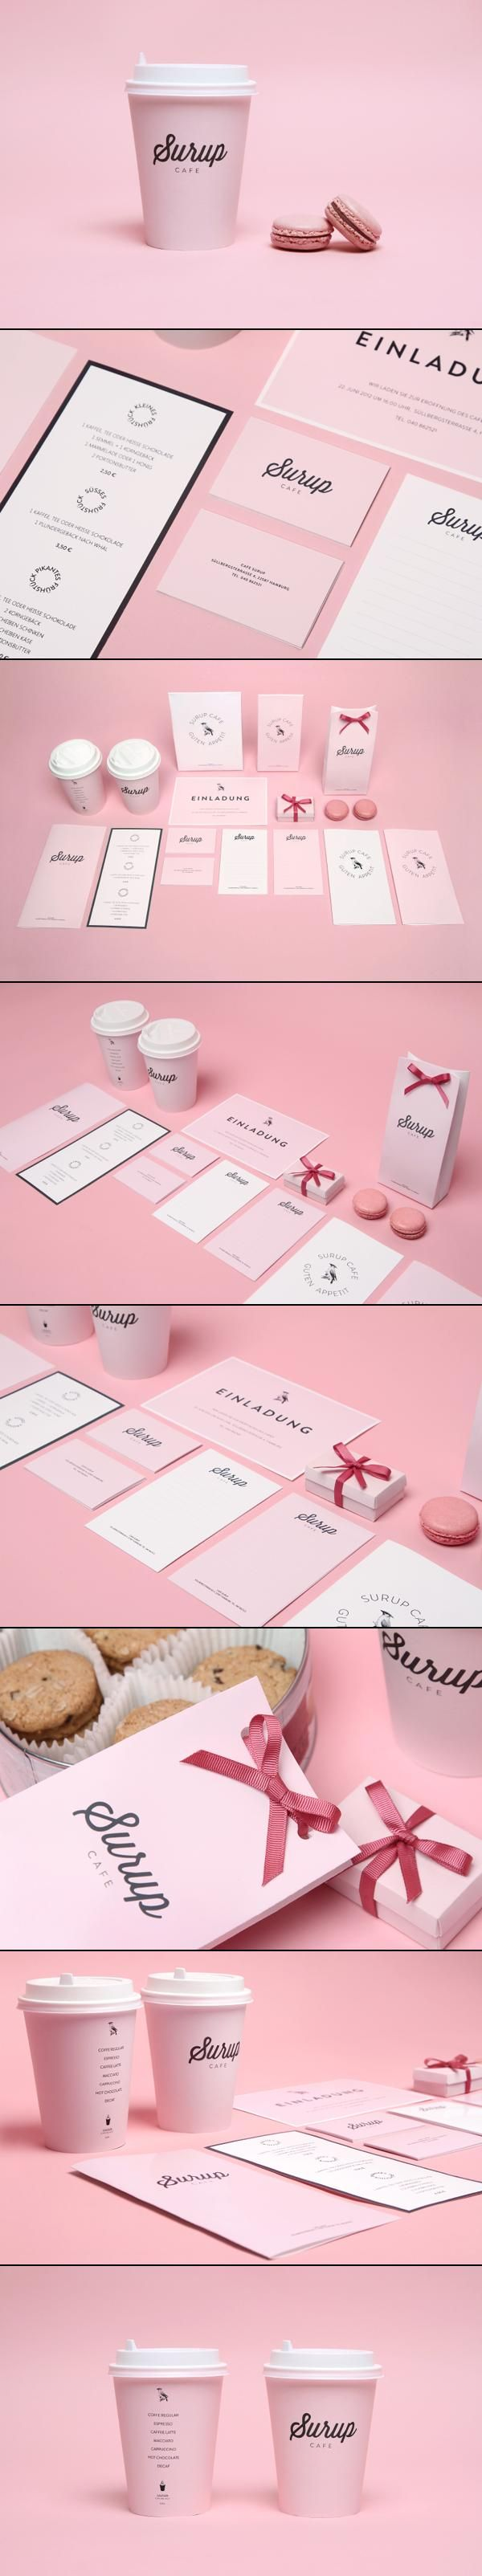 Surup Cafe #identity #packaging #branding #marketing that's just pinky : ) PD